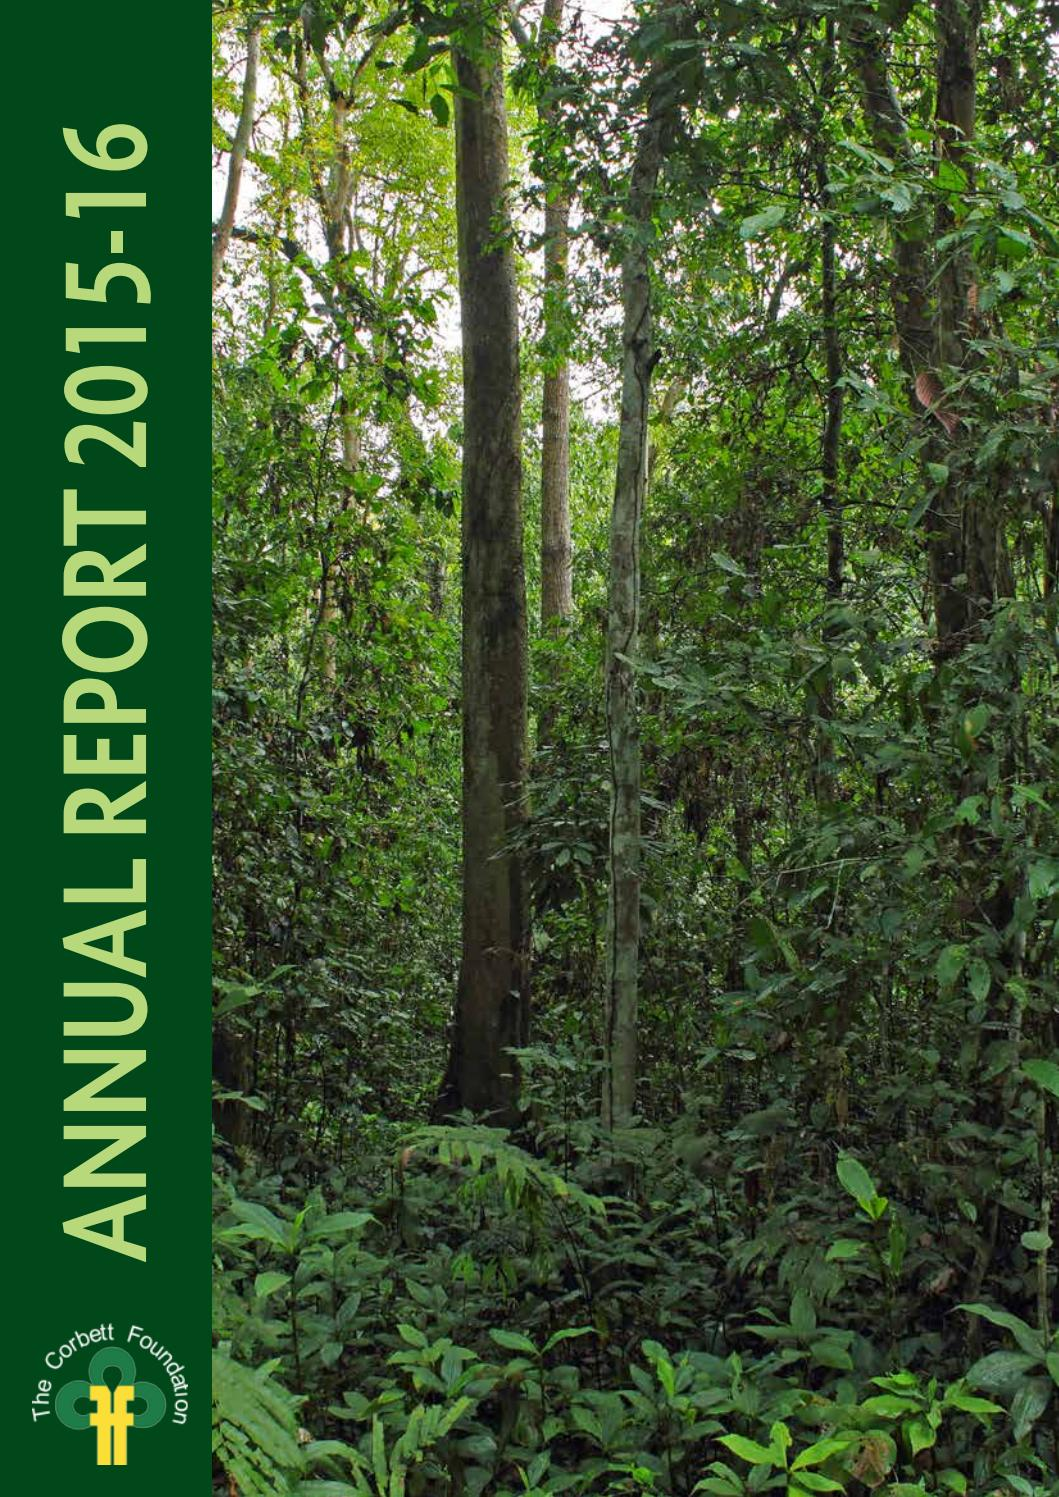 Annualreport2015 16 by The Corbett Foundation - issuu